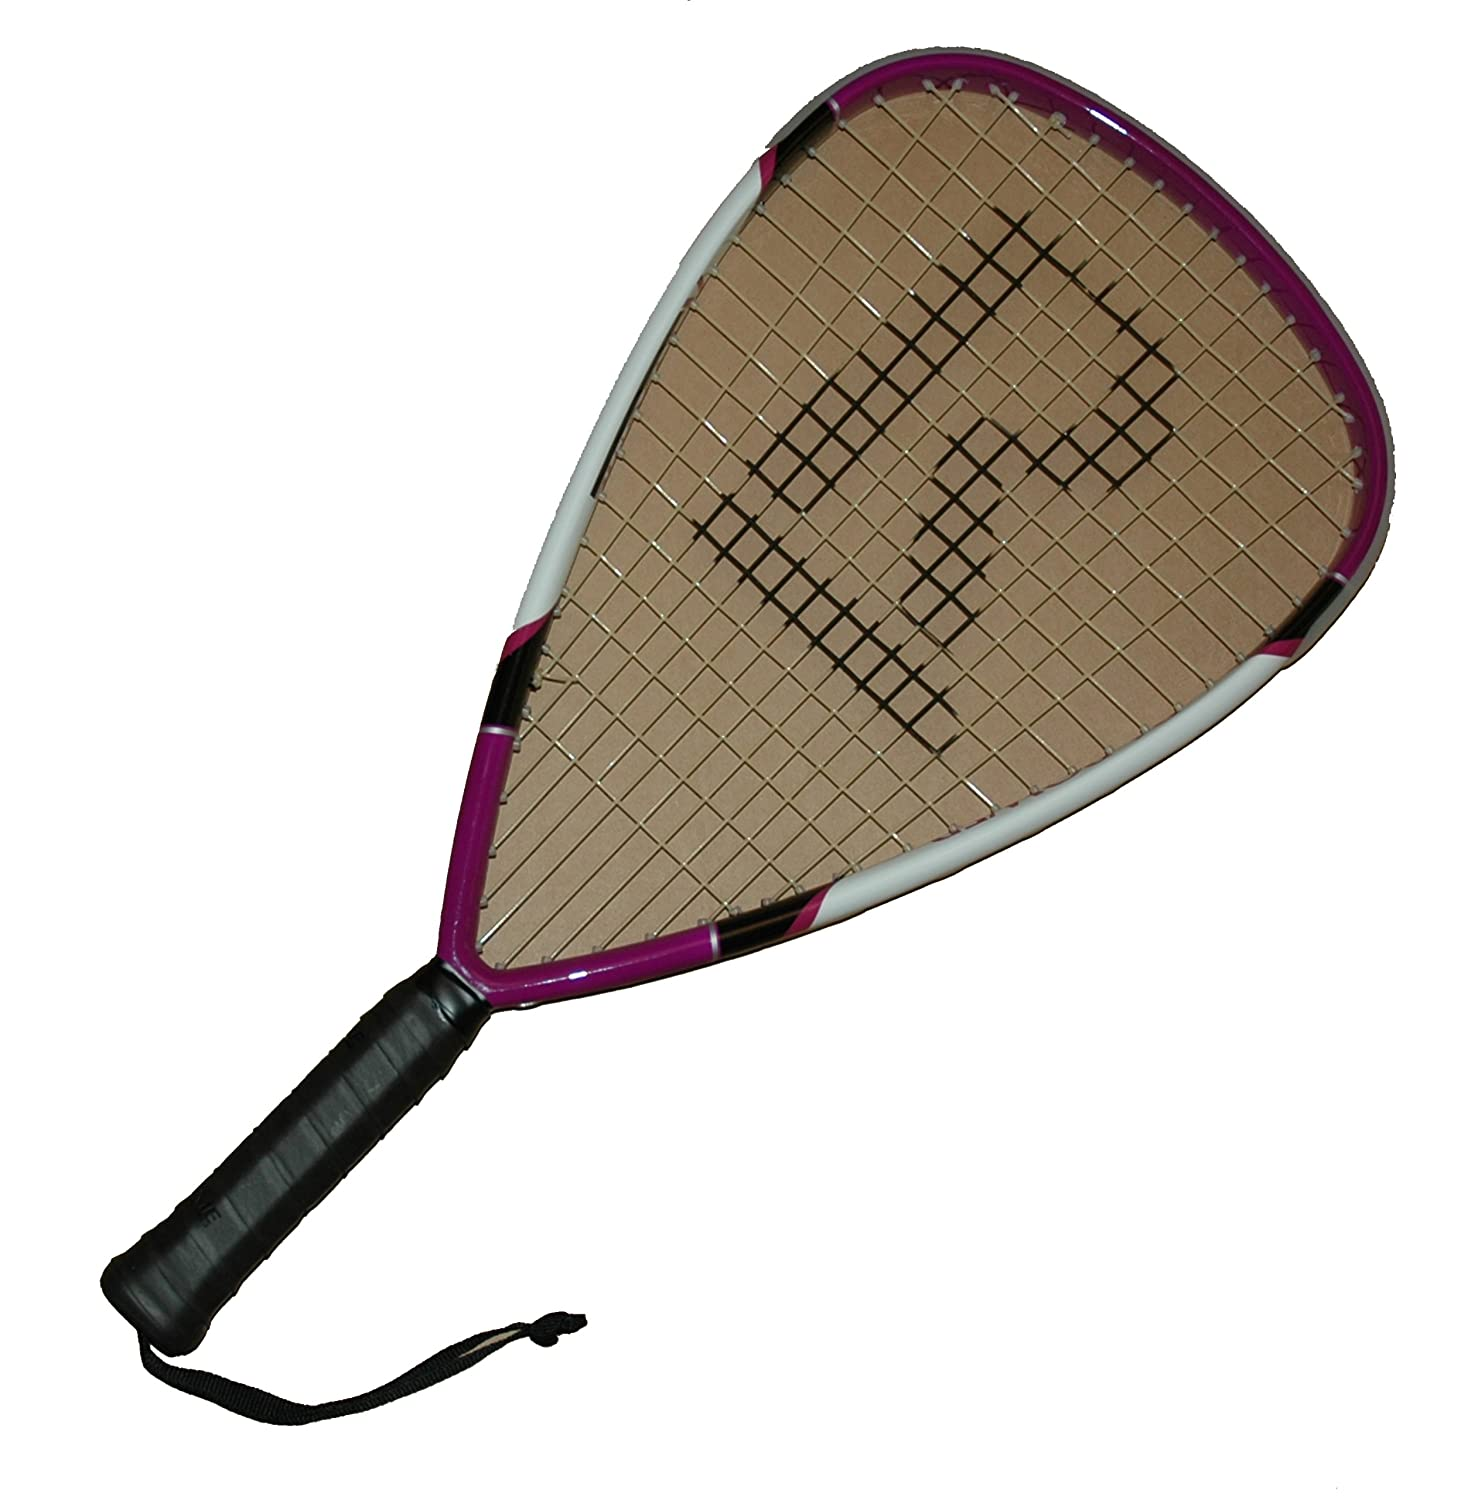 Ransome R1 Power Raqueta de Racketball